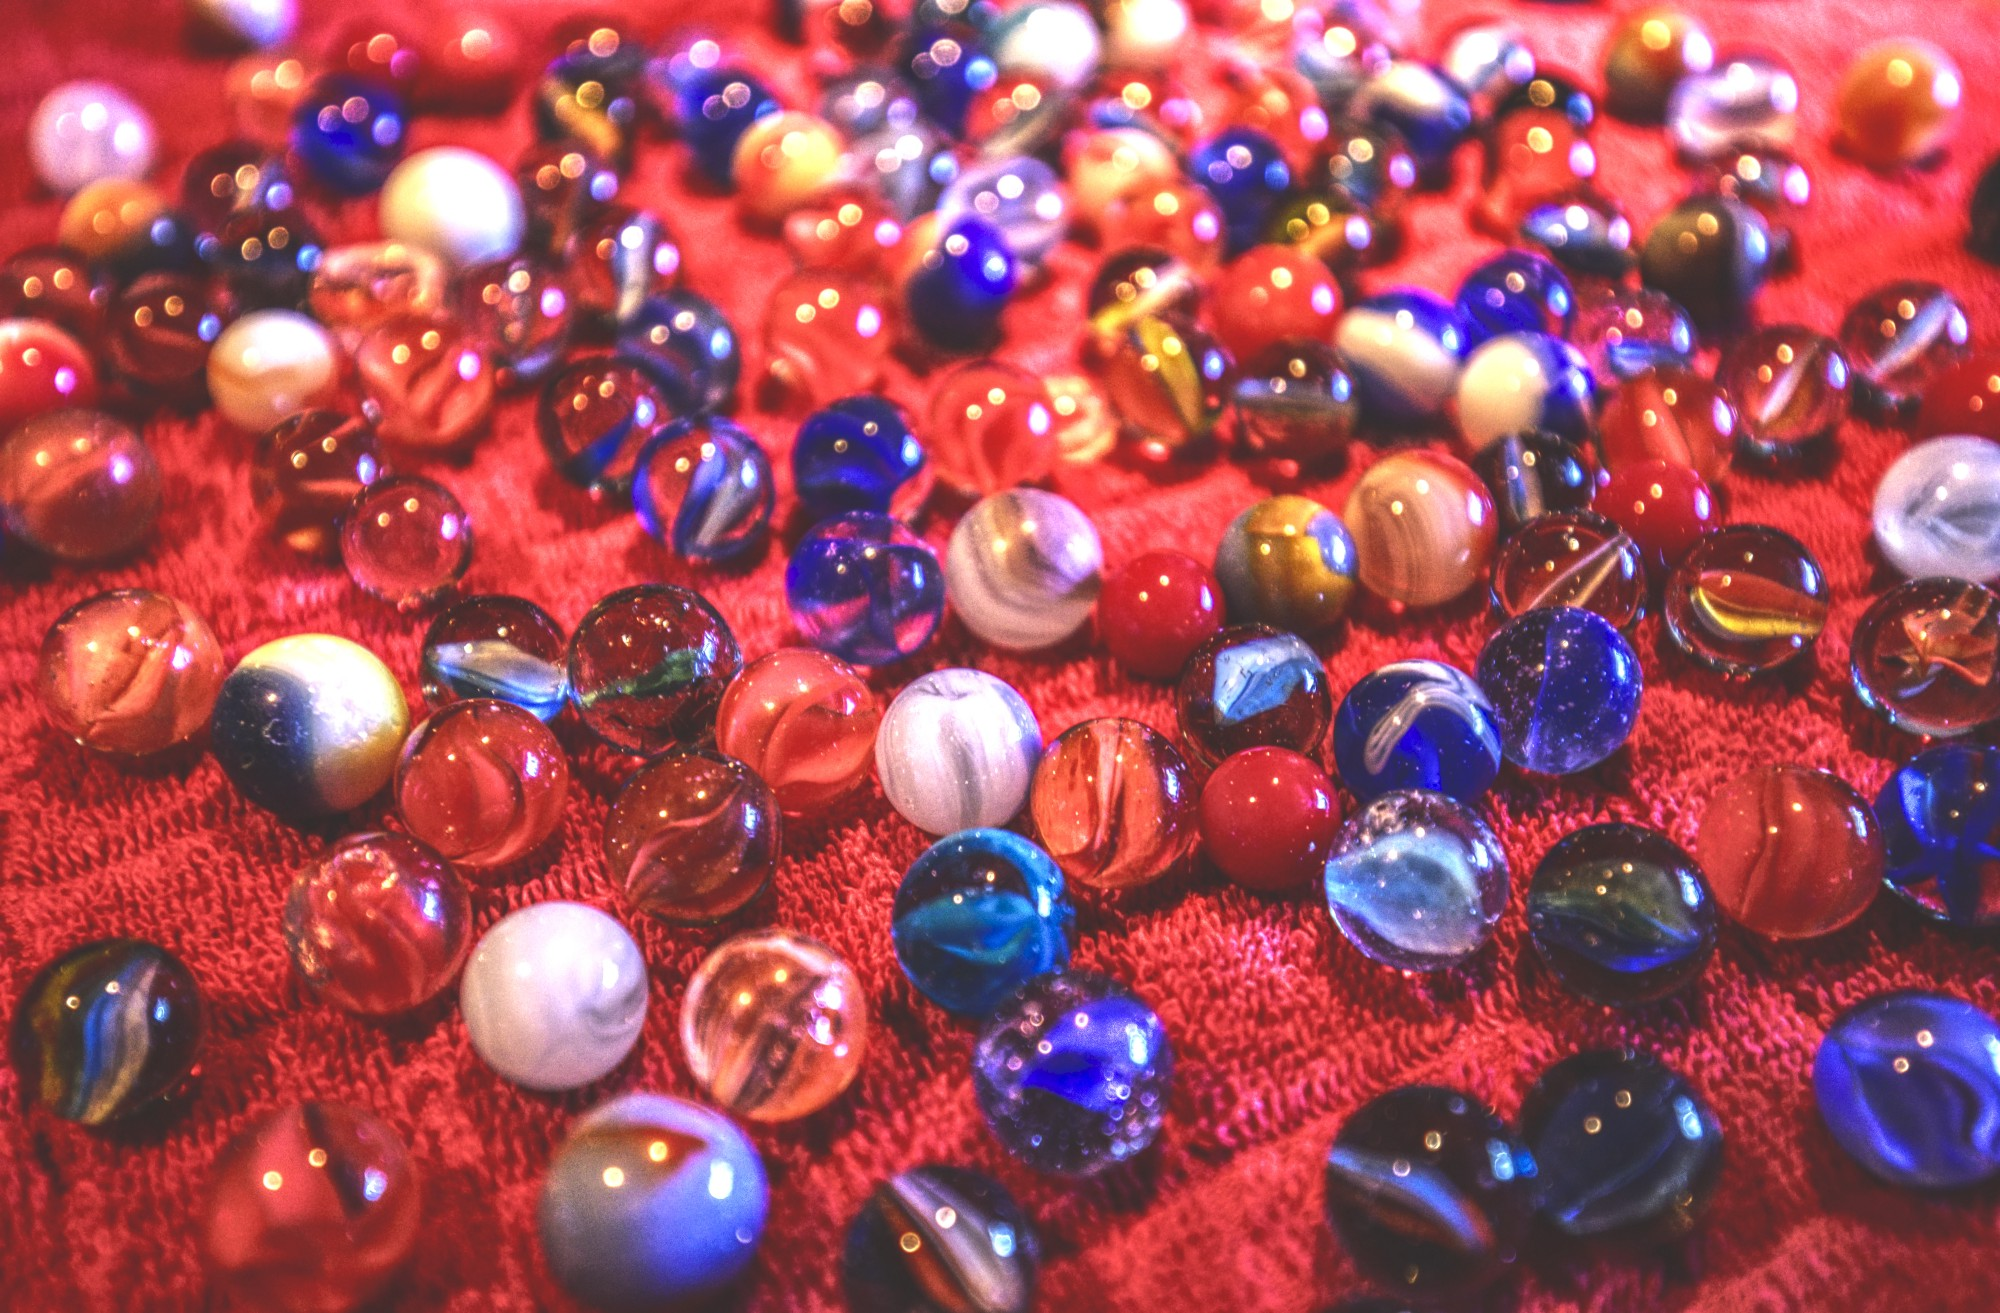 Hi there! Pictures of many marbles on the floor. BichoDoMato.